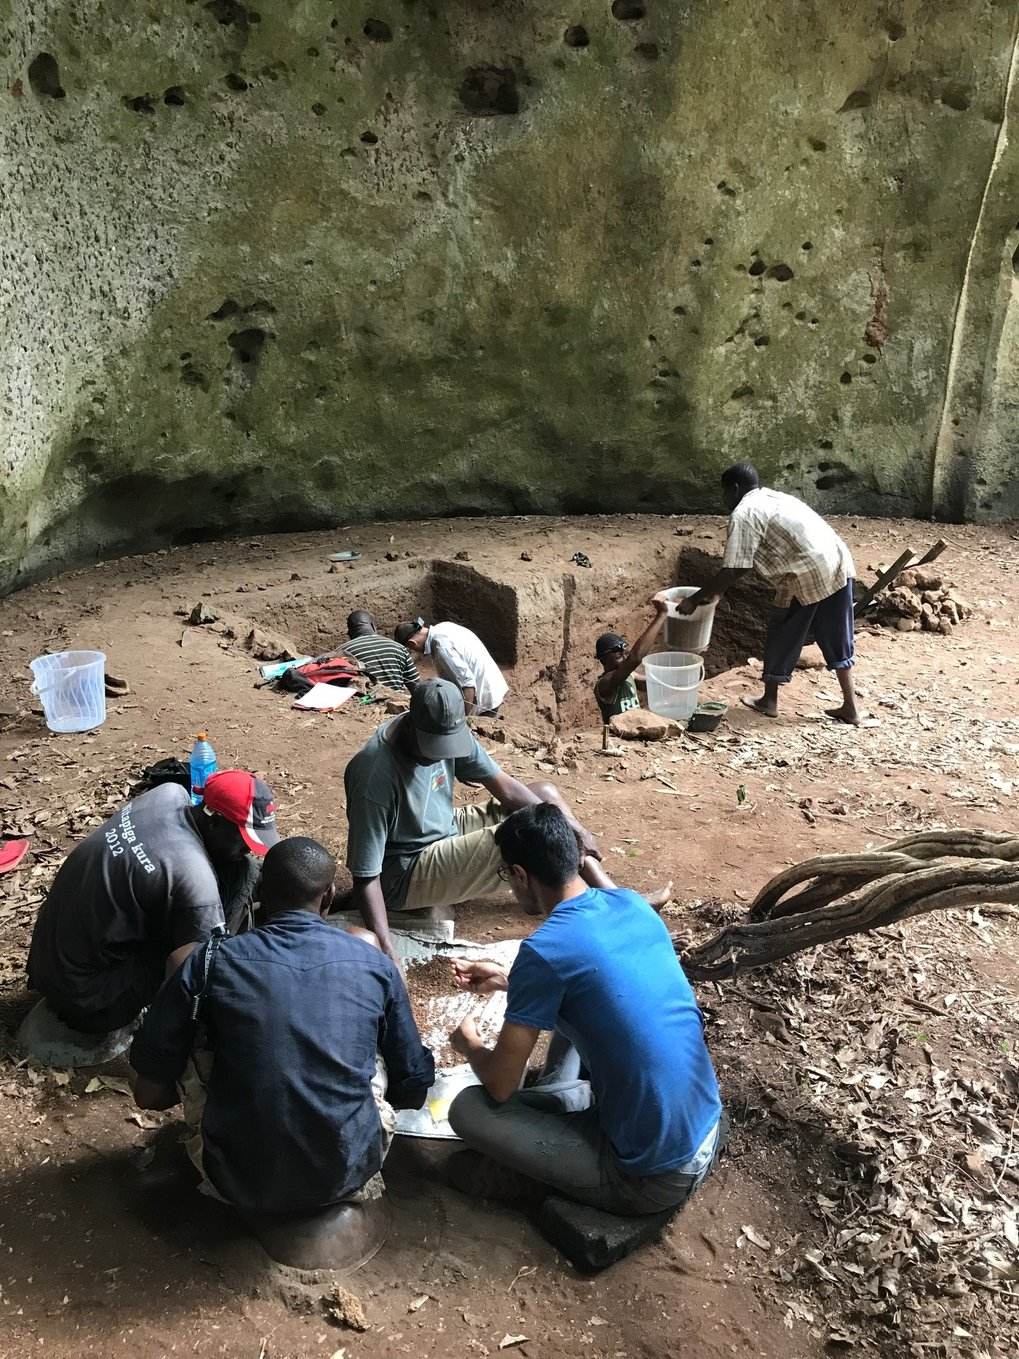 Another view of the joint Max Planck Institute for the Science of Human History and National Museums of Kenya excavations at Panga ya Saidi cave in Kenya.